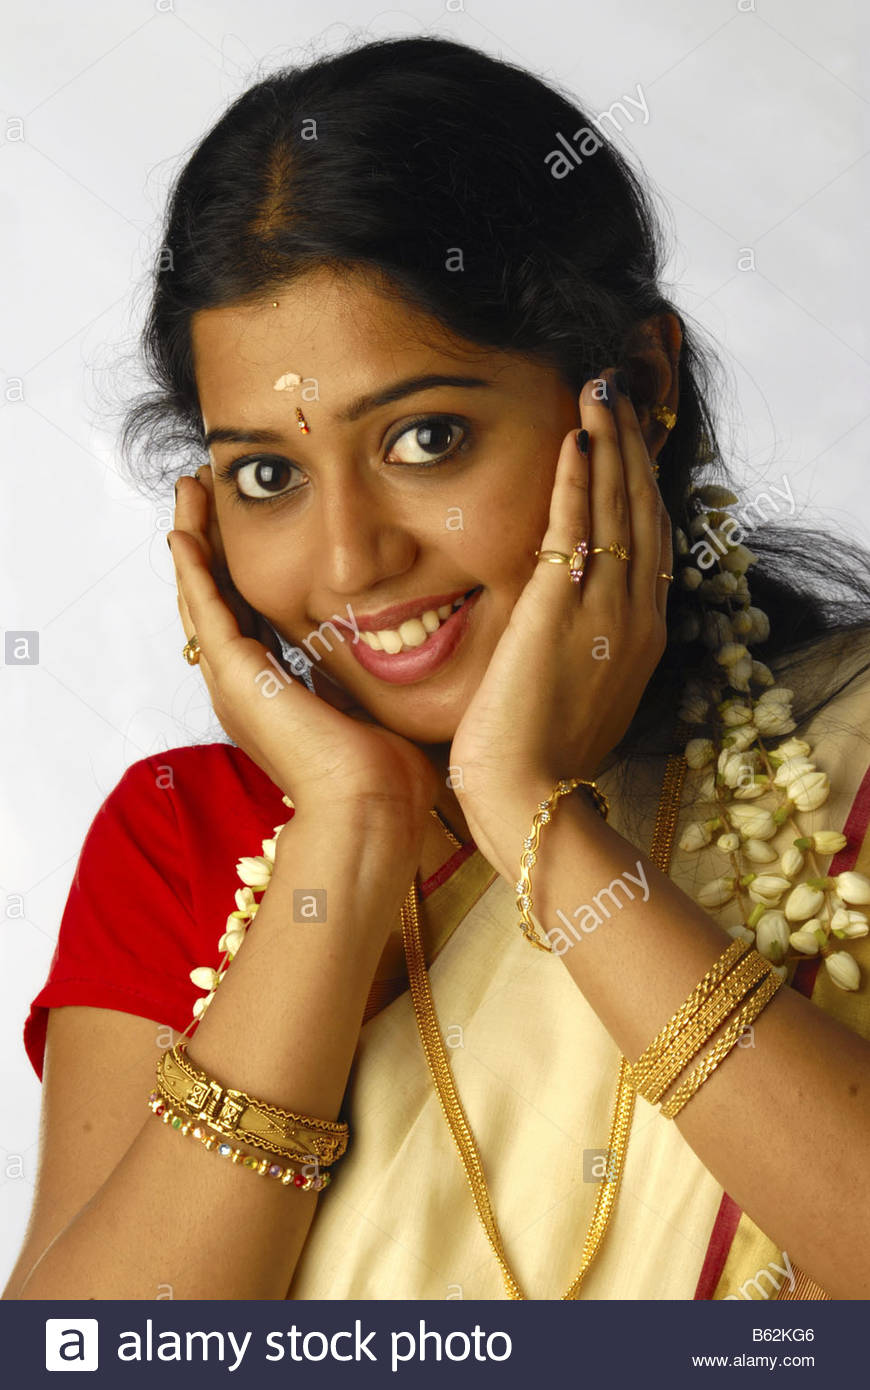 Etonnant A MODEL FROM KERALA IN TRADITIONAL ATTIRE DURING ONAM Stock ...